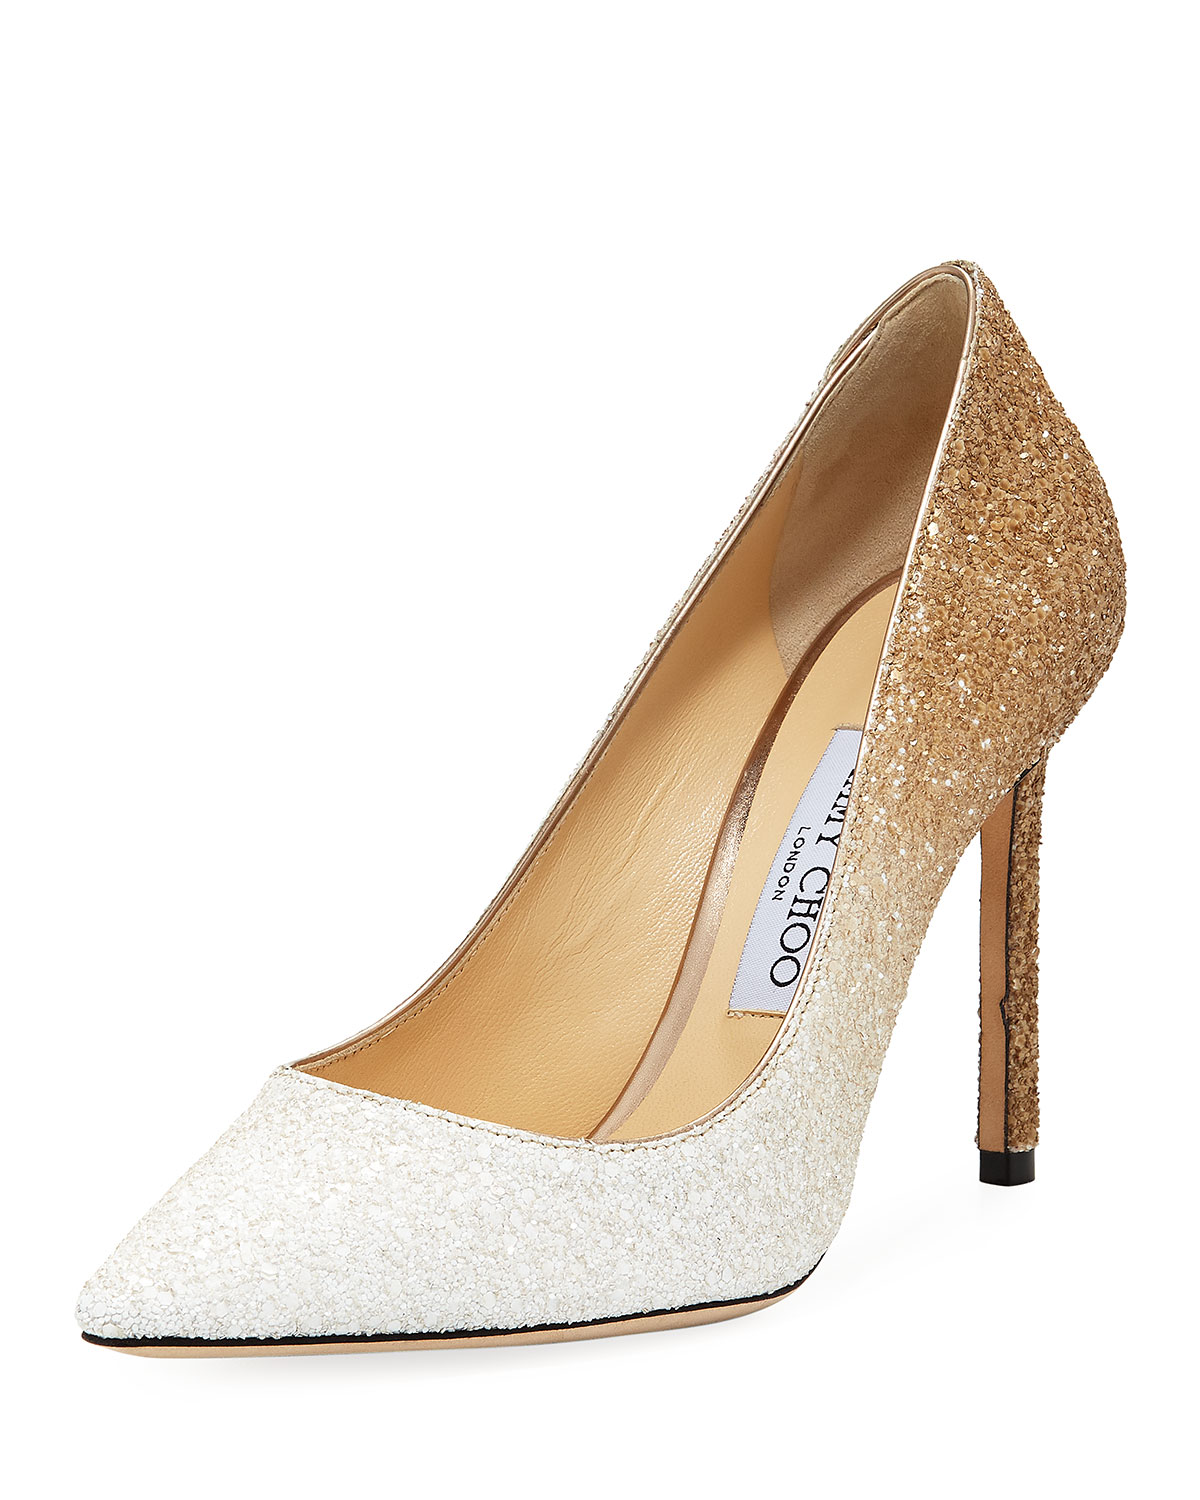 WOMEN'S ROMY 100 OMBRE GLITTERED LEATHER POINTED TOE HIGH-HEEL PUMPS